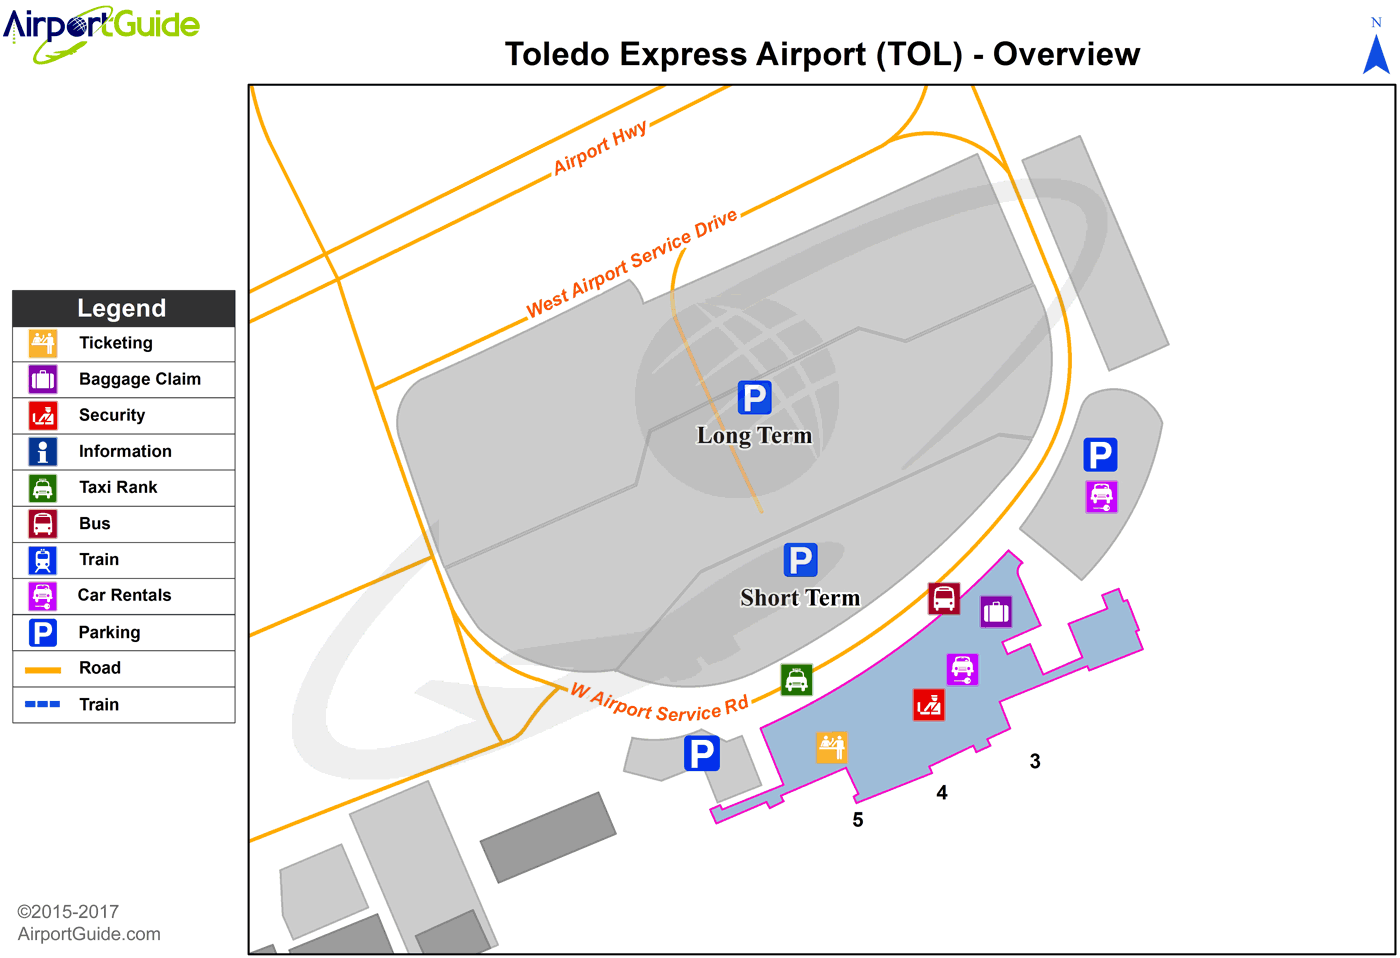 Toledo - Toledo Express (TOL) Airport Terminal Map - Overview